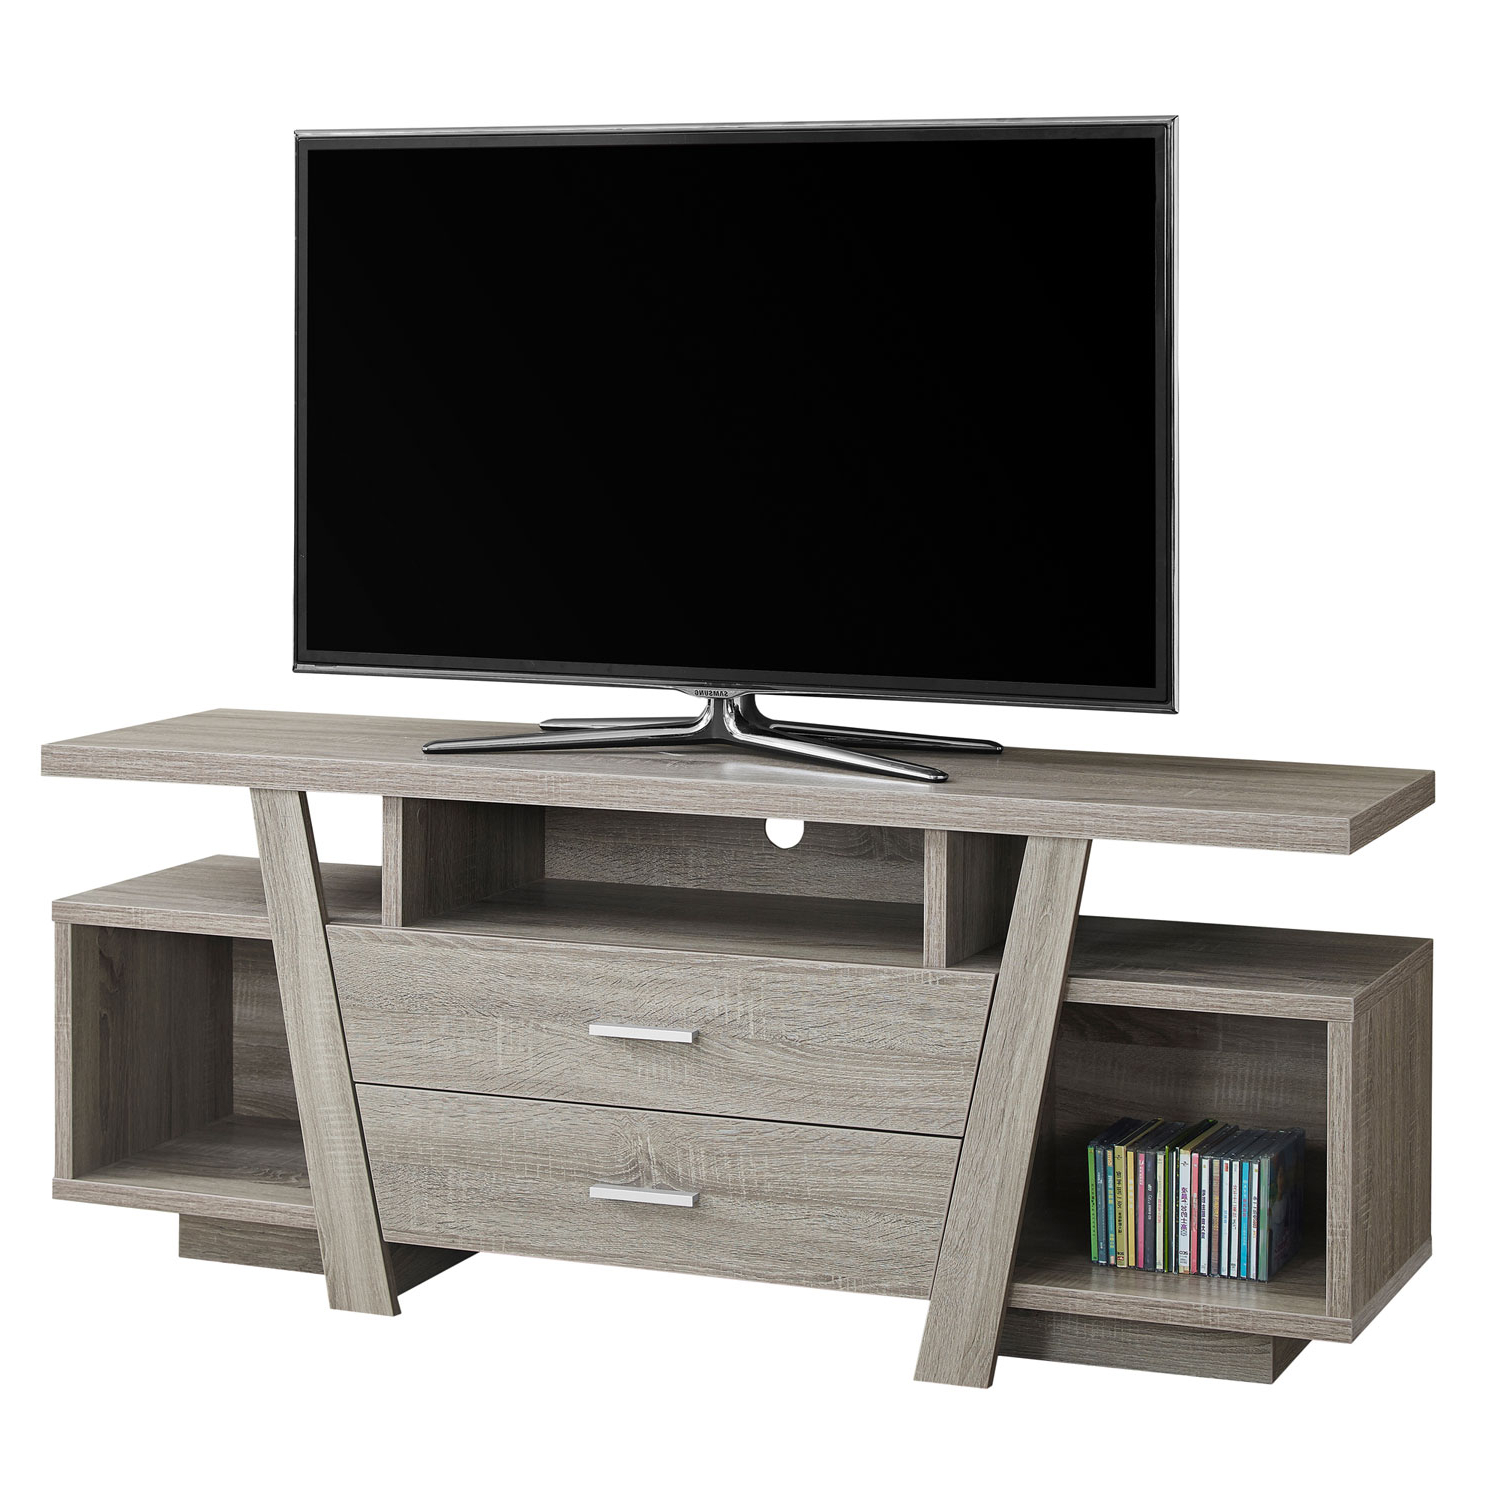 Most Popular 24 Inch Wide Tv Stands Inside Hawthorne Ave Tv Stand 60L / Dark Taupe With 2 Storage Drawers I (View 11 of 20)